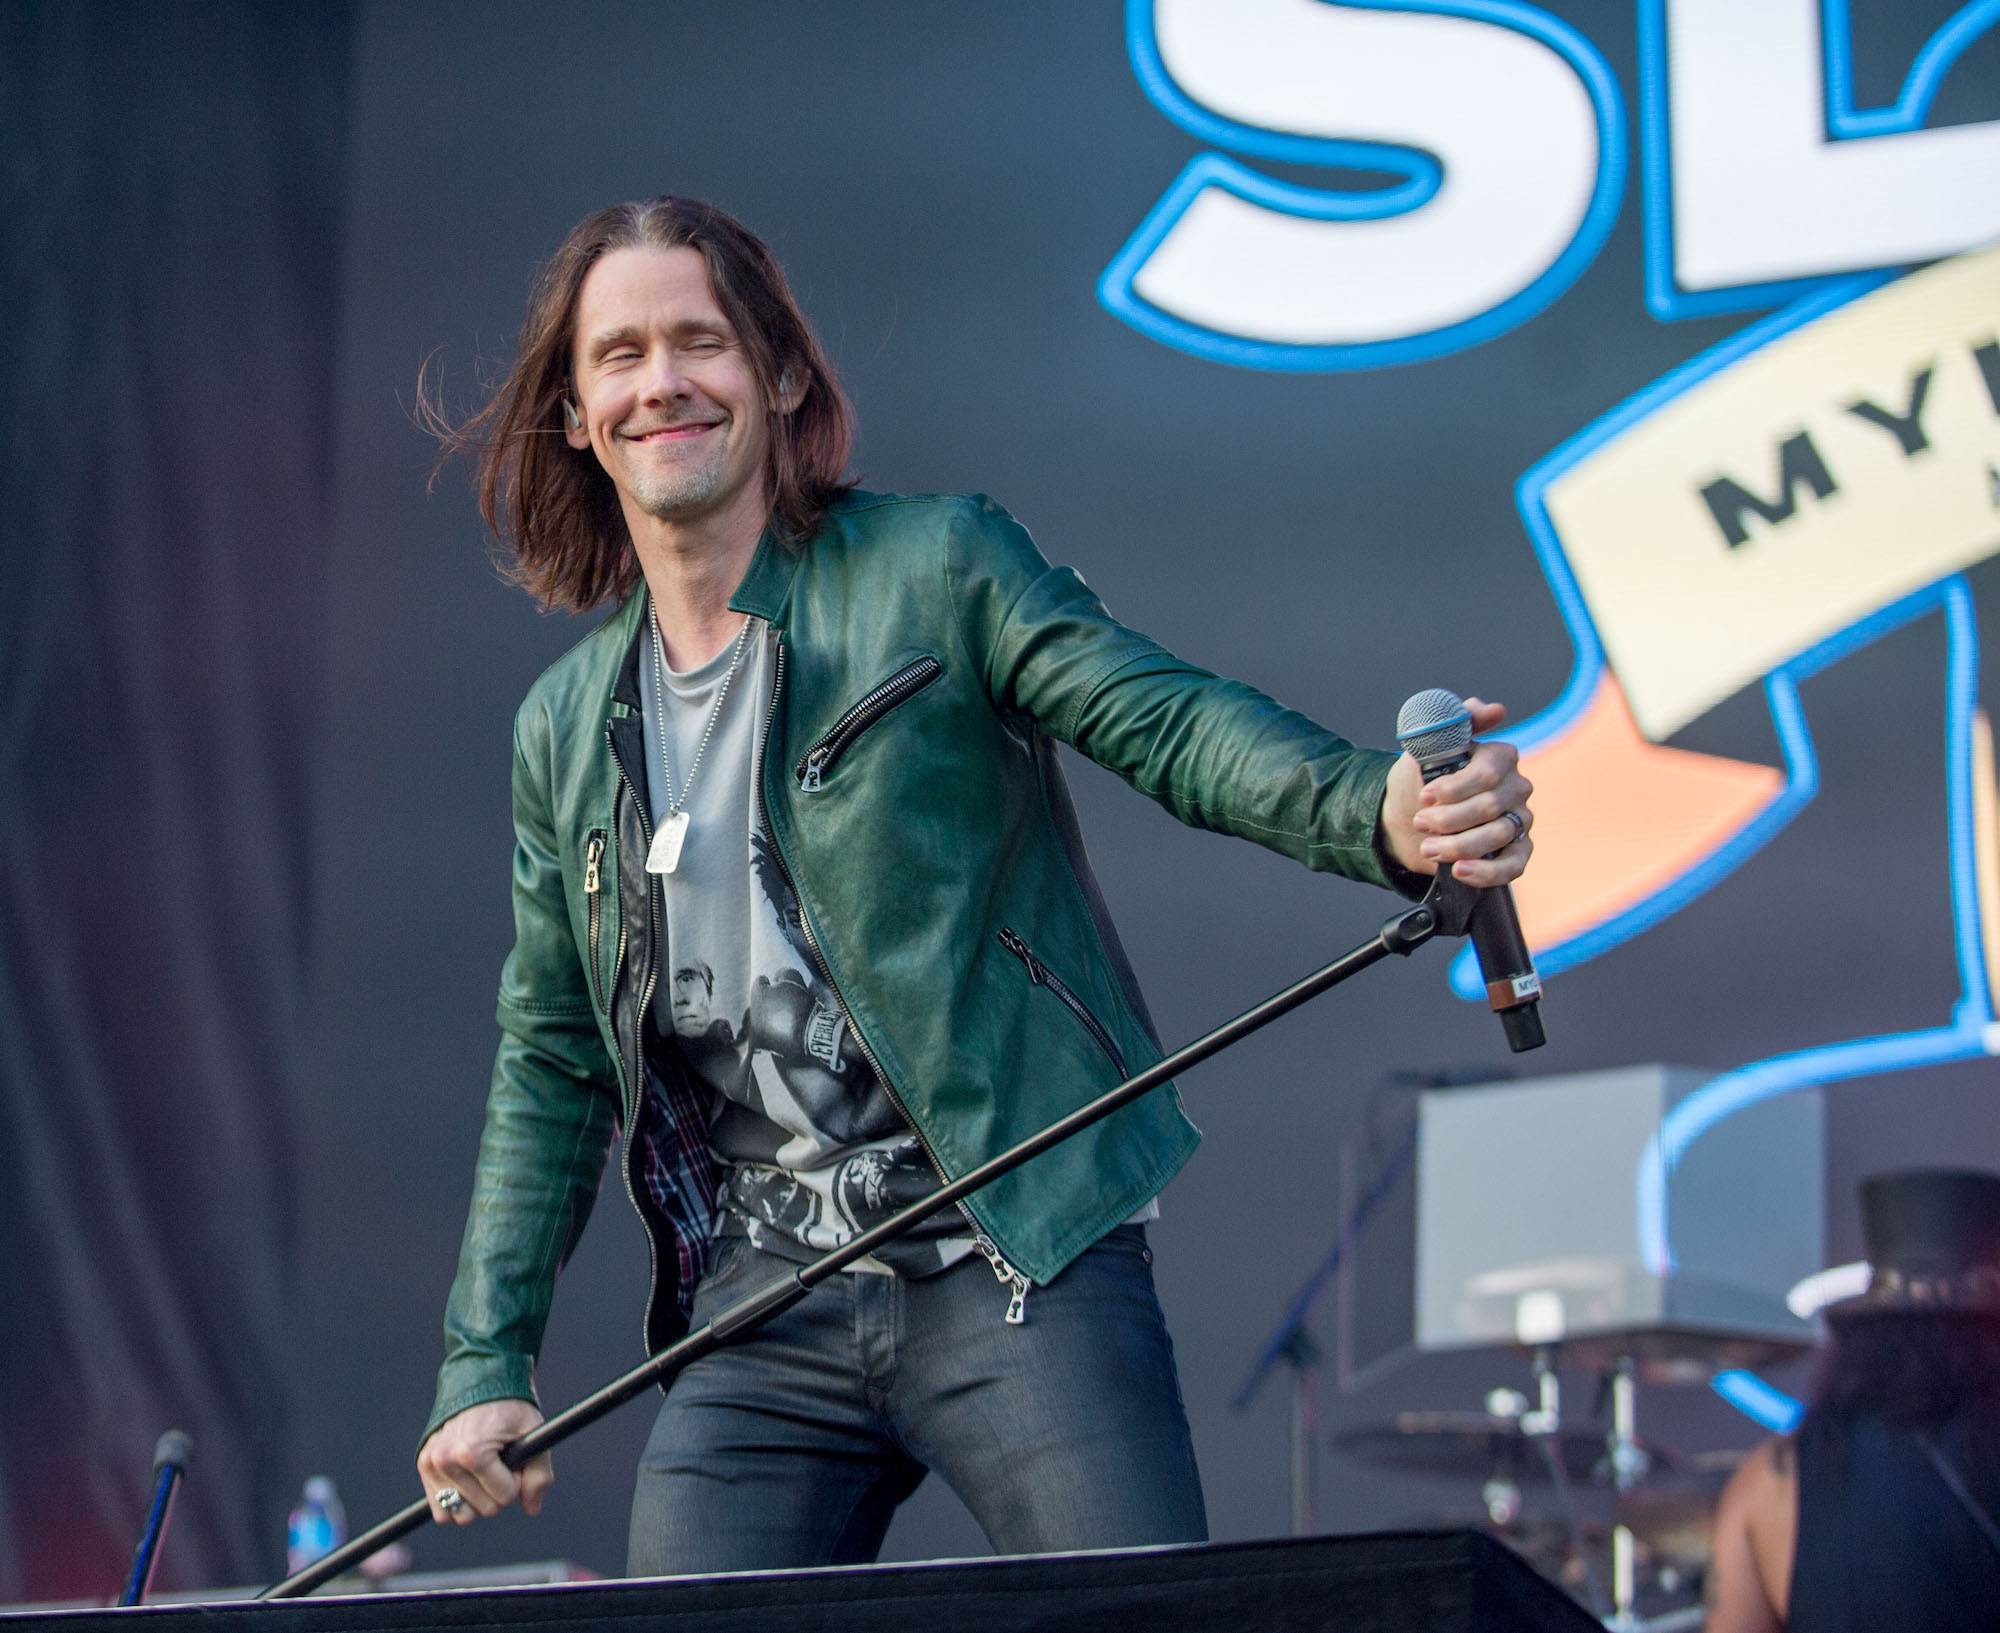 SLASH Featuring Myles Kennedy And The Conspirators Live at Lollapalooza [GALLERY] 4